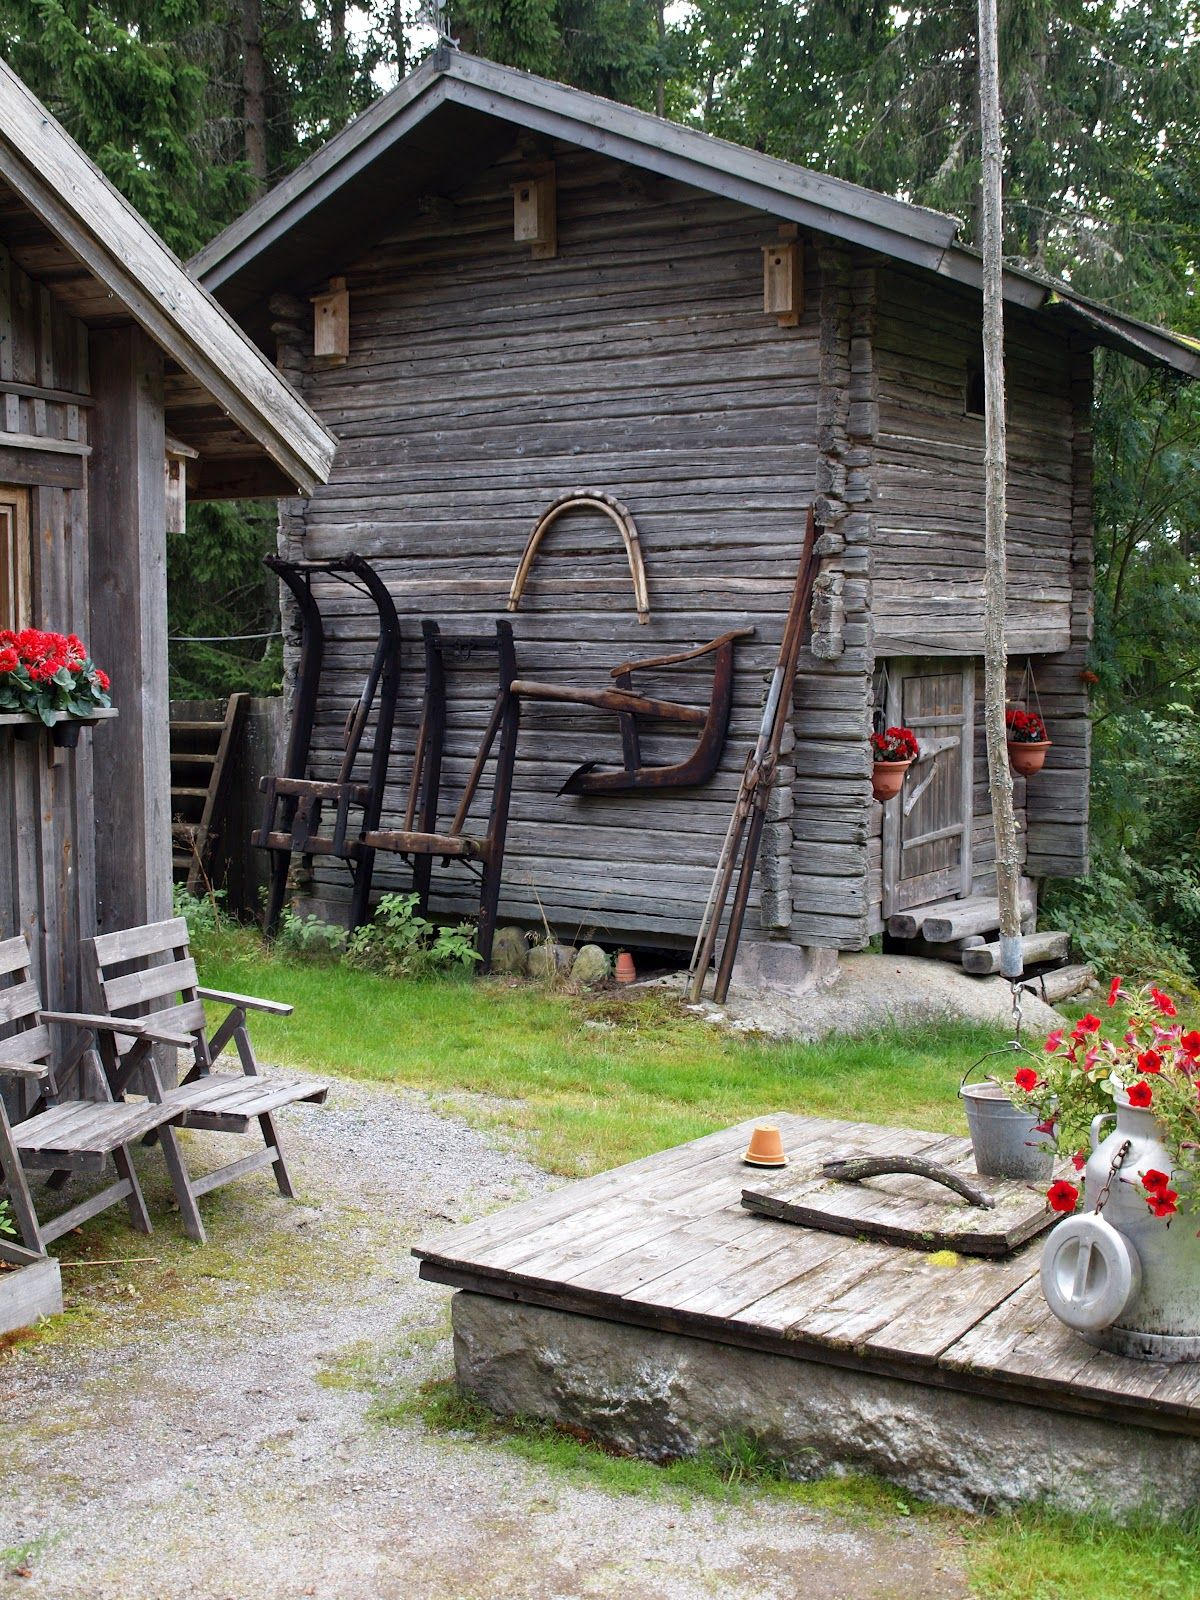 Attirant Find This Pin And More On Types Of Sheds. Farm Storage Sheds